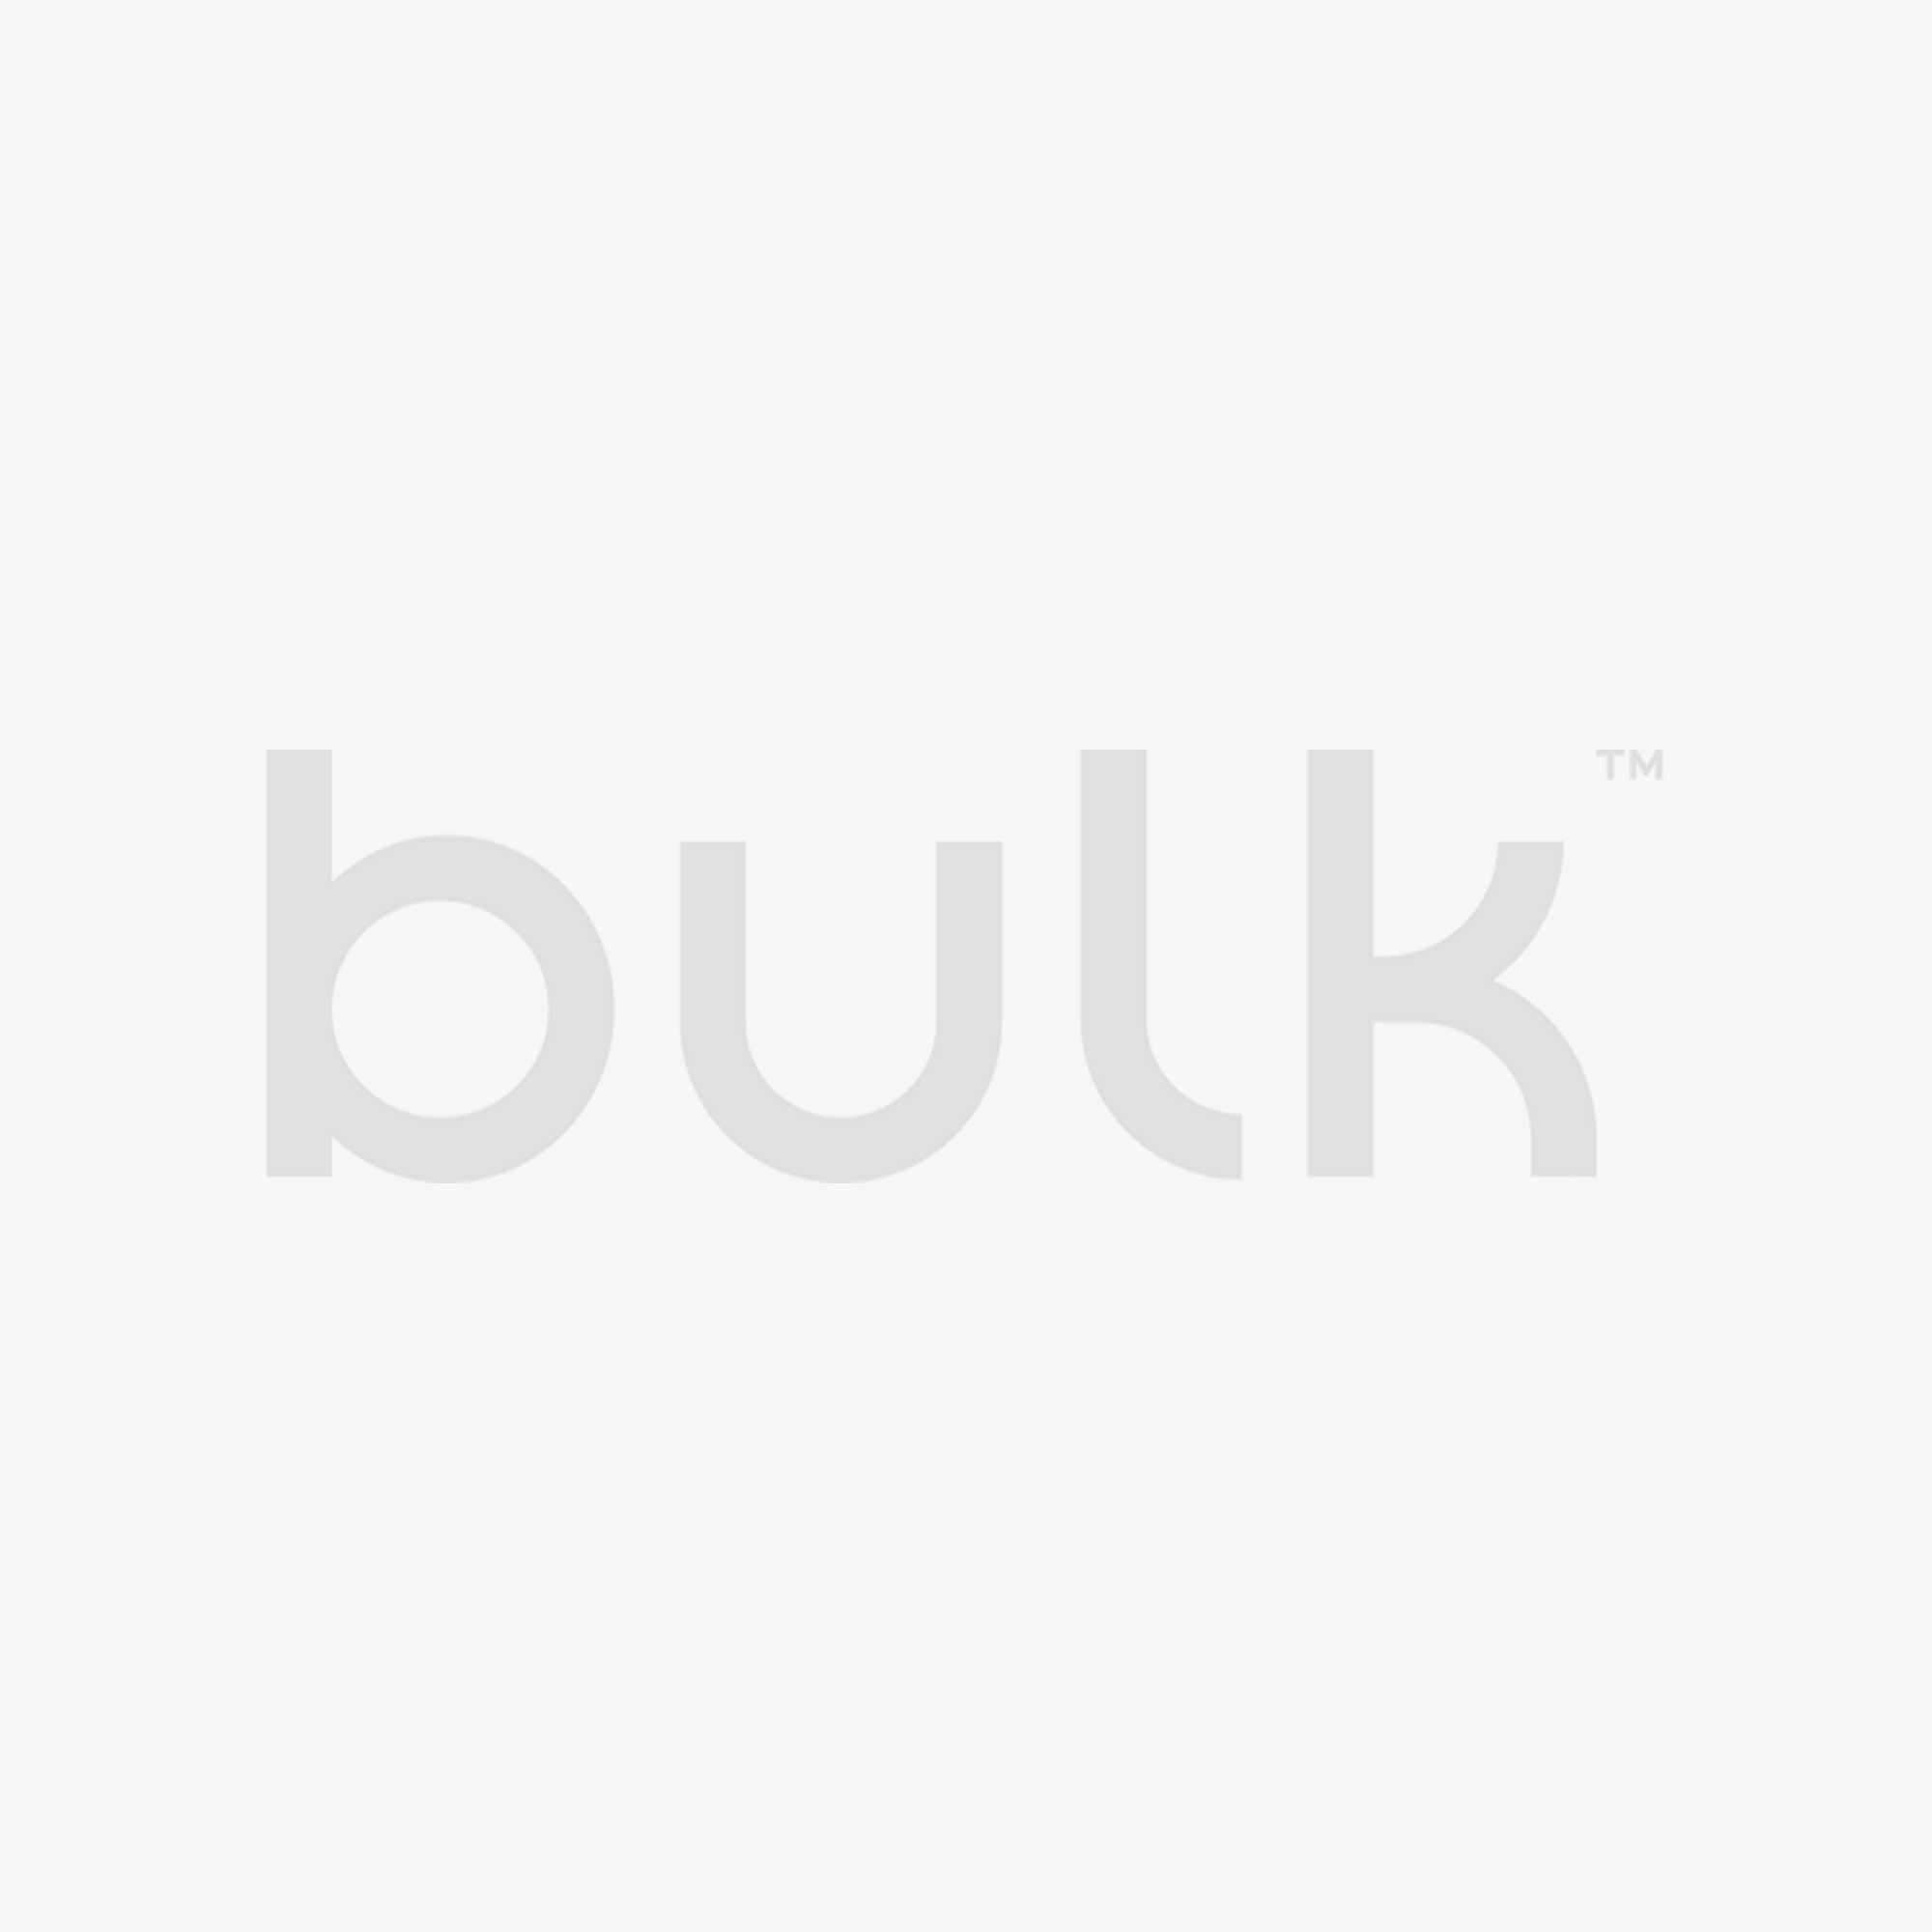 Correas para Rodillas BULK POWDERS™